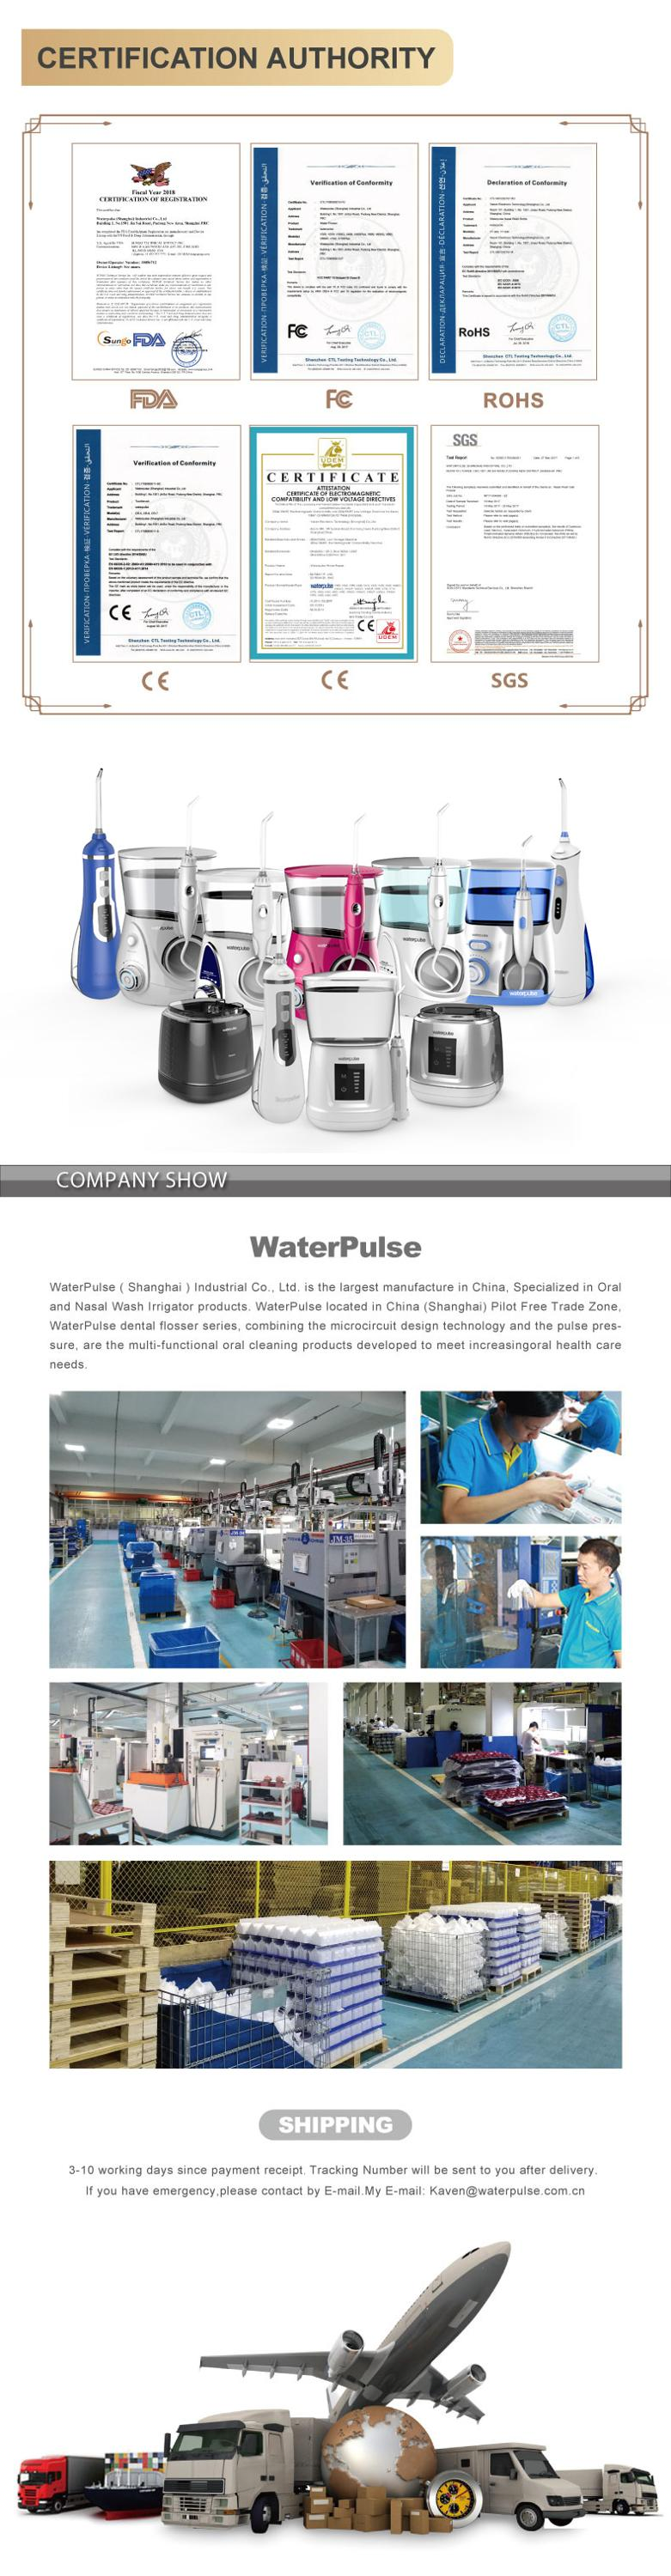 Waterpulse V500 Water Dental Flosser Powered Floss Water Jet Teeth Cleaning Machine Dental Implements Spa Dental Portable Jet